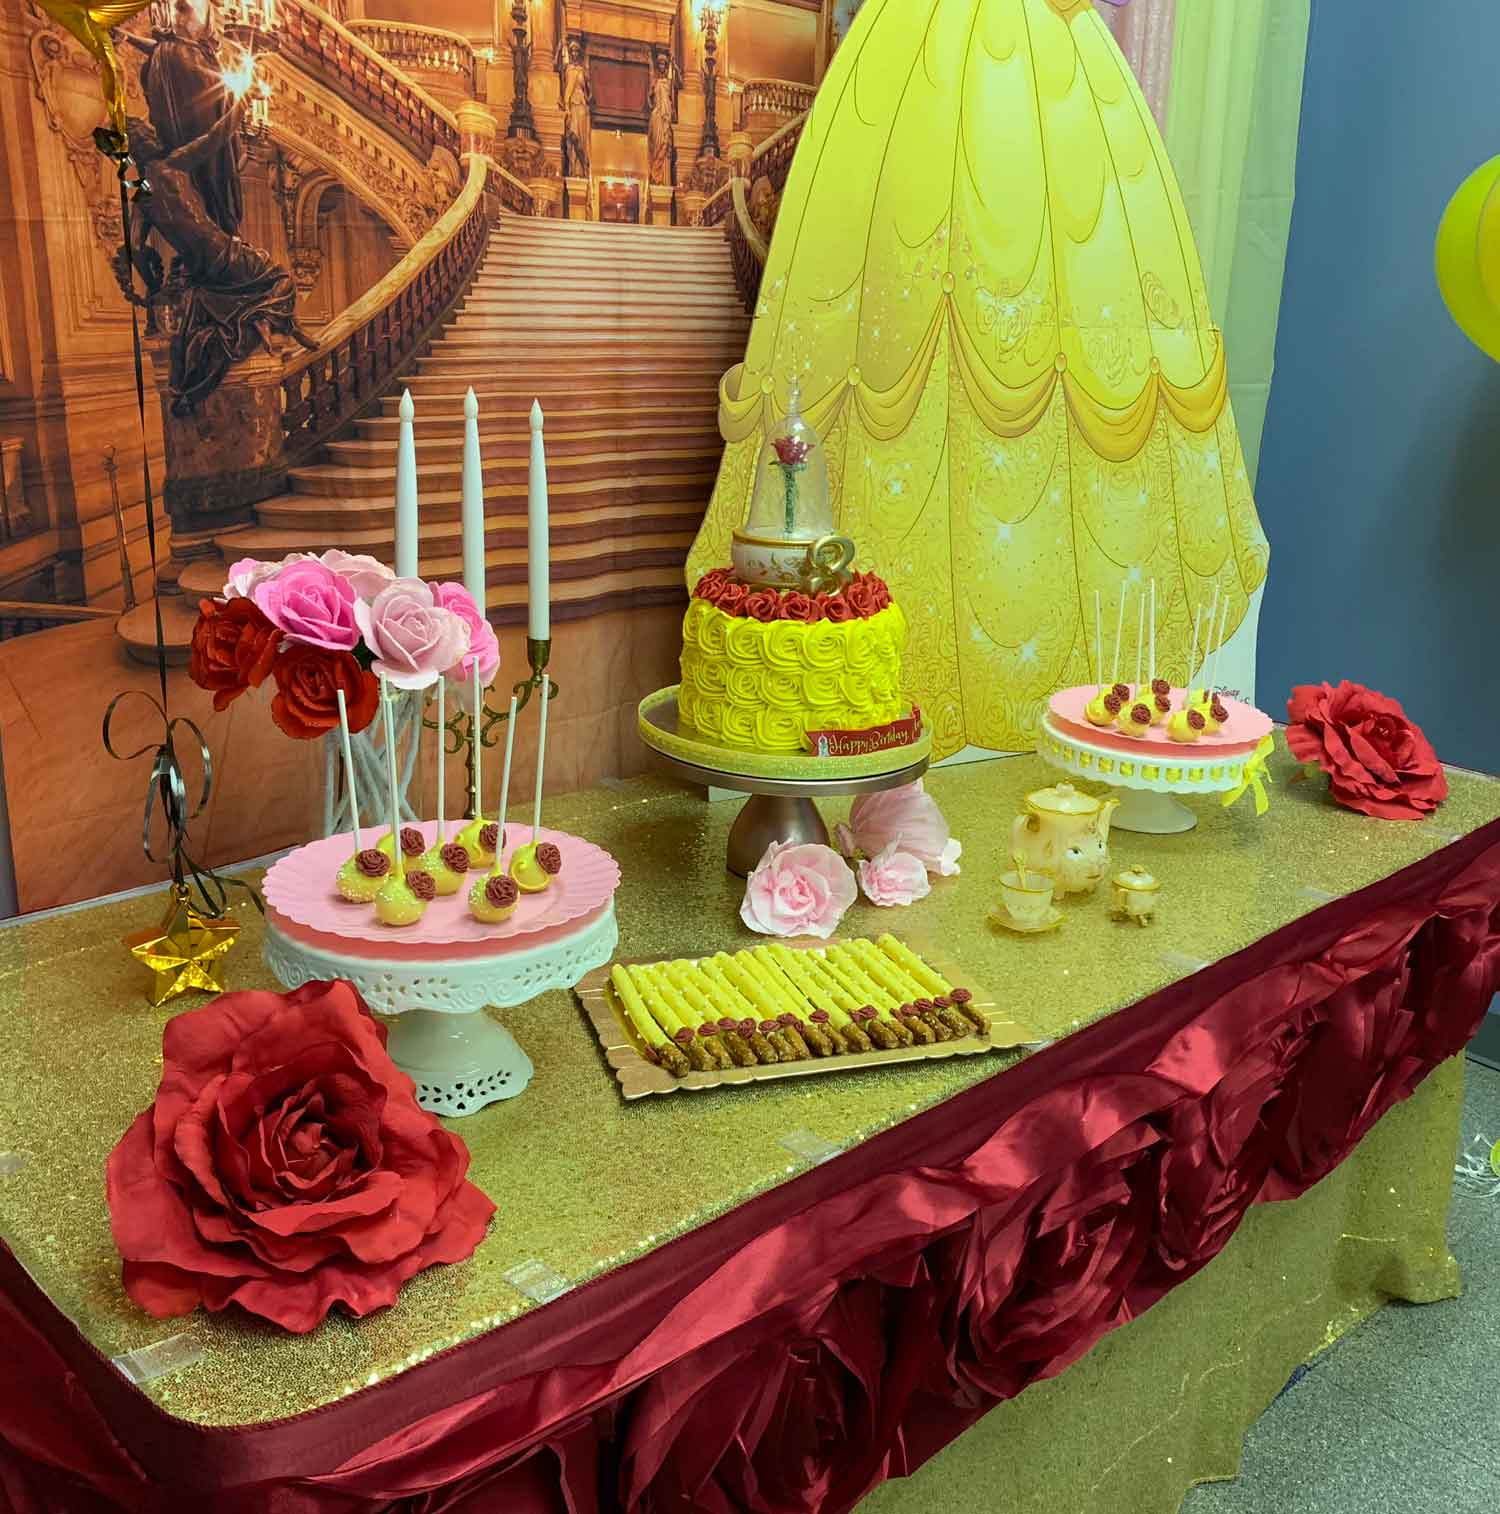 themed-treats-for-kids-birthday-parties.jpg